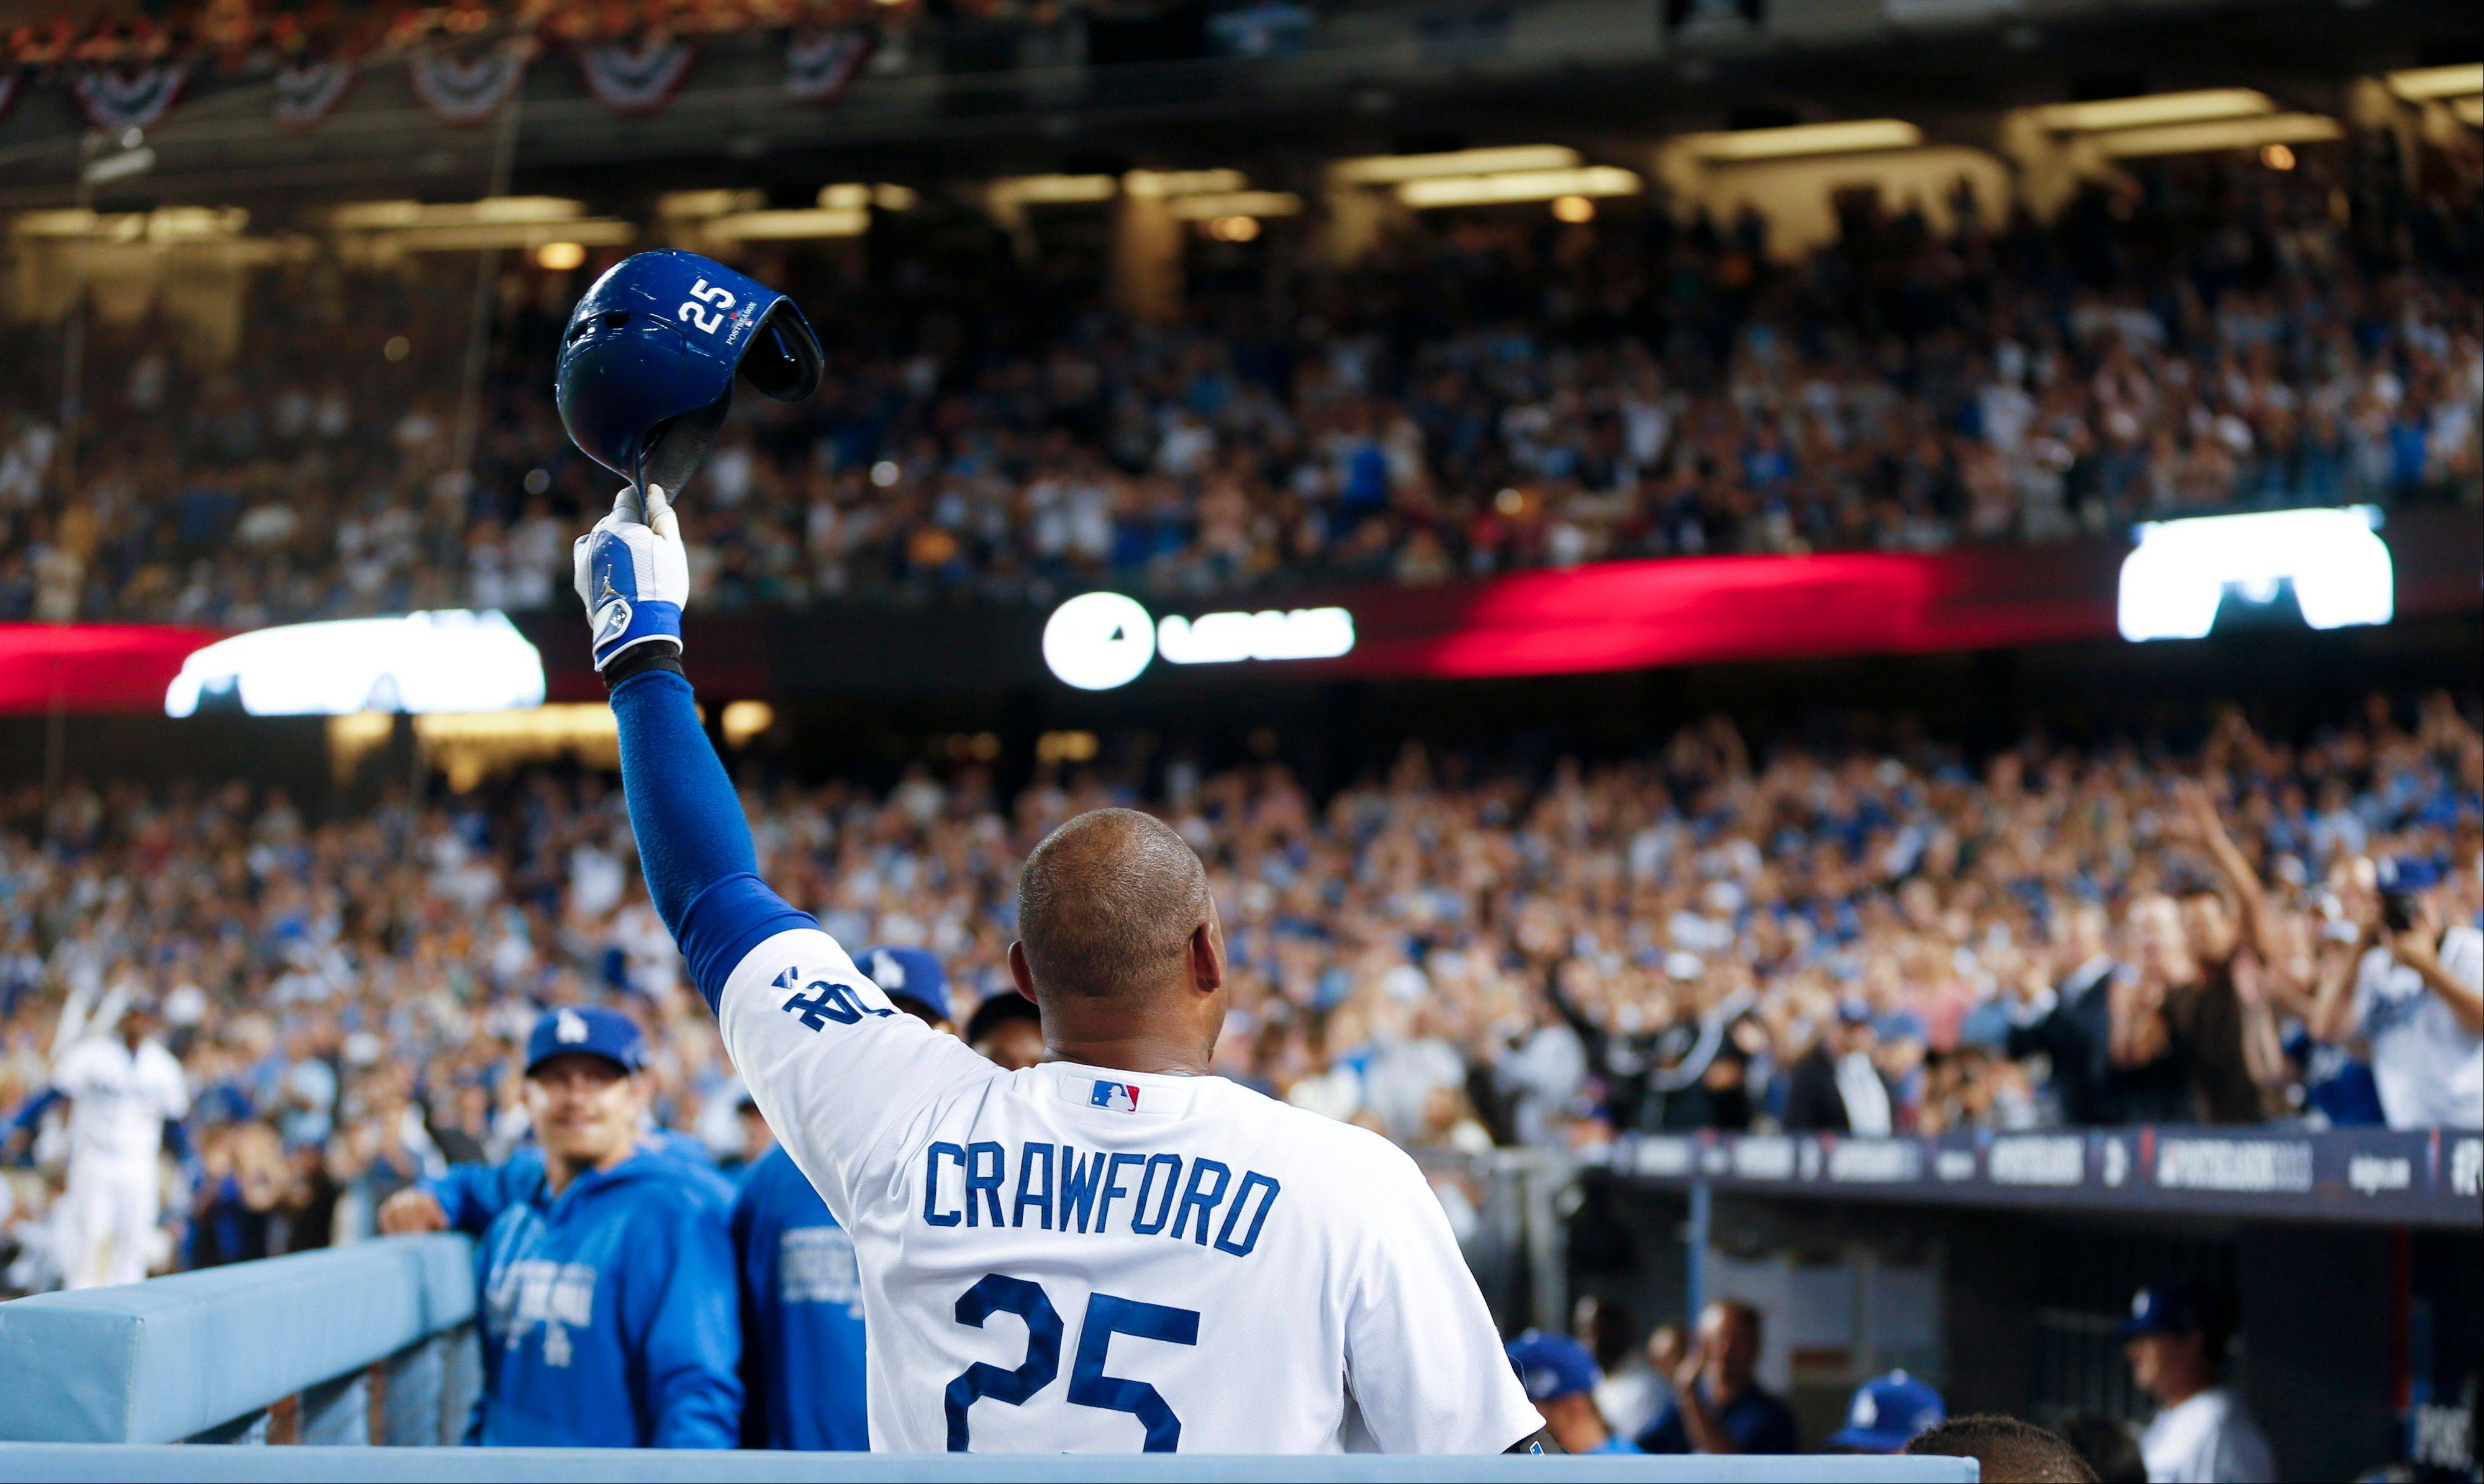 Carl Crawford tips his cap to cheering Dodgers fans after he hit a solo home run in the third inning of Game 4.